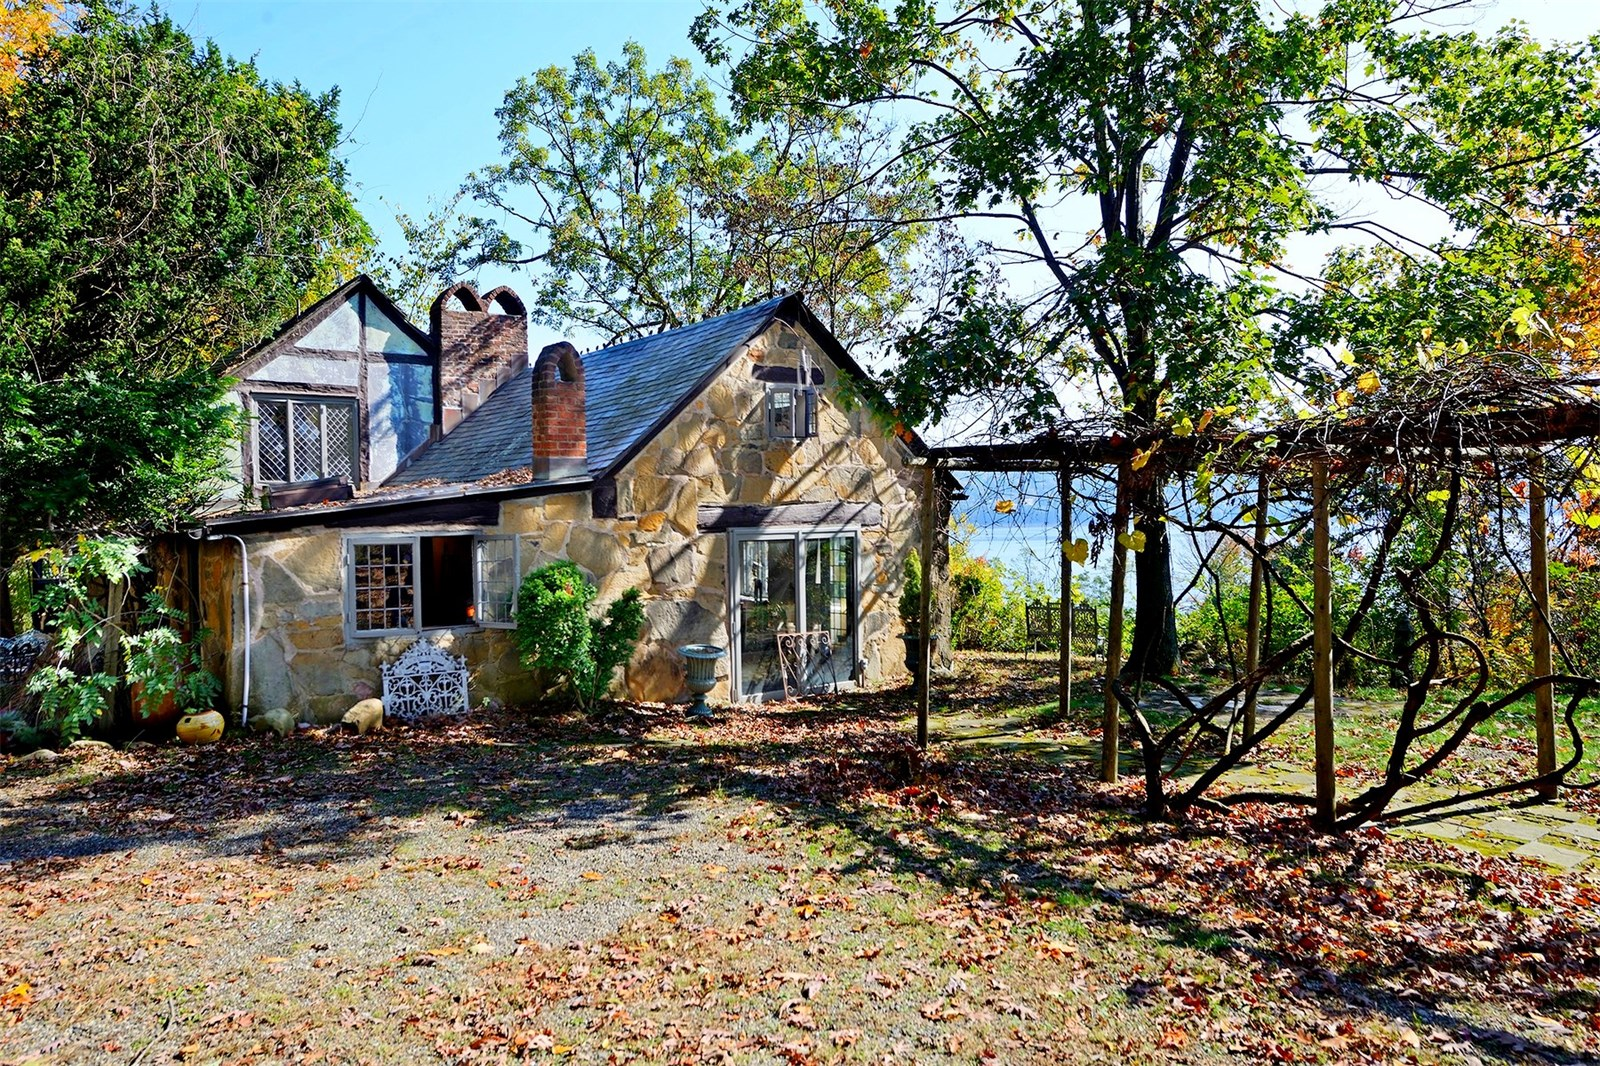 55 Woods Road, Snedens Landing, Palisades NY, House in the Woods, Orson Welles, John Steinbeck